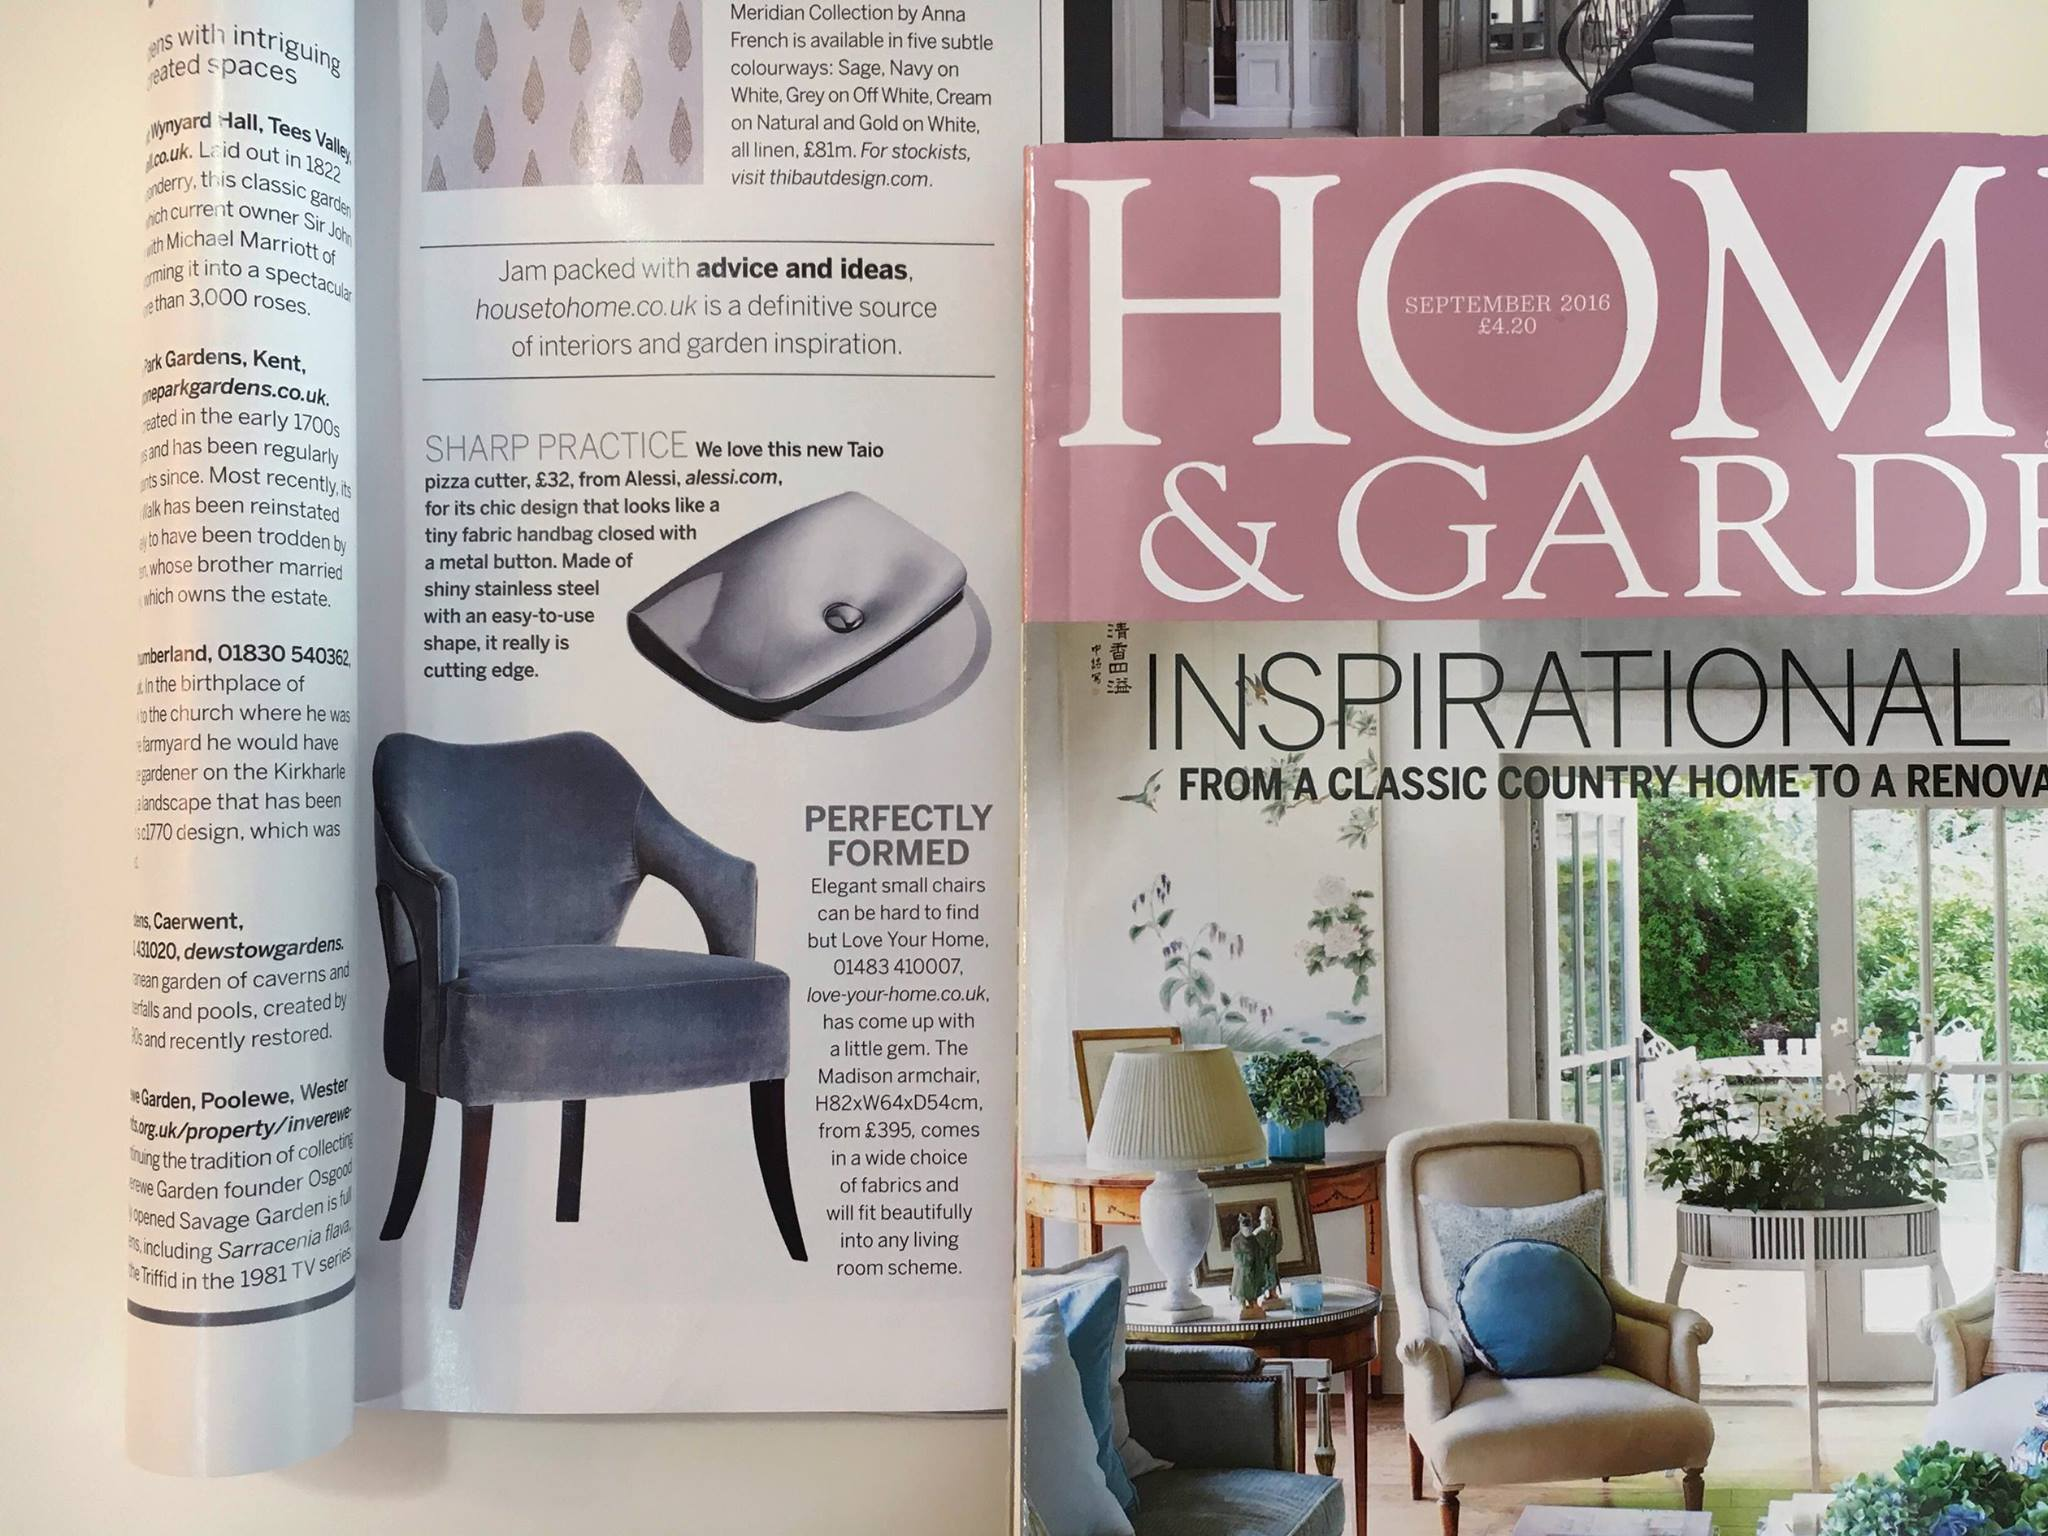 Madison Chair in Homes & Gardens